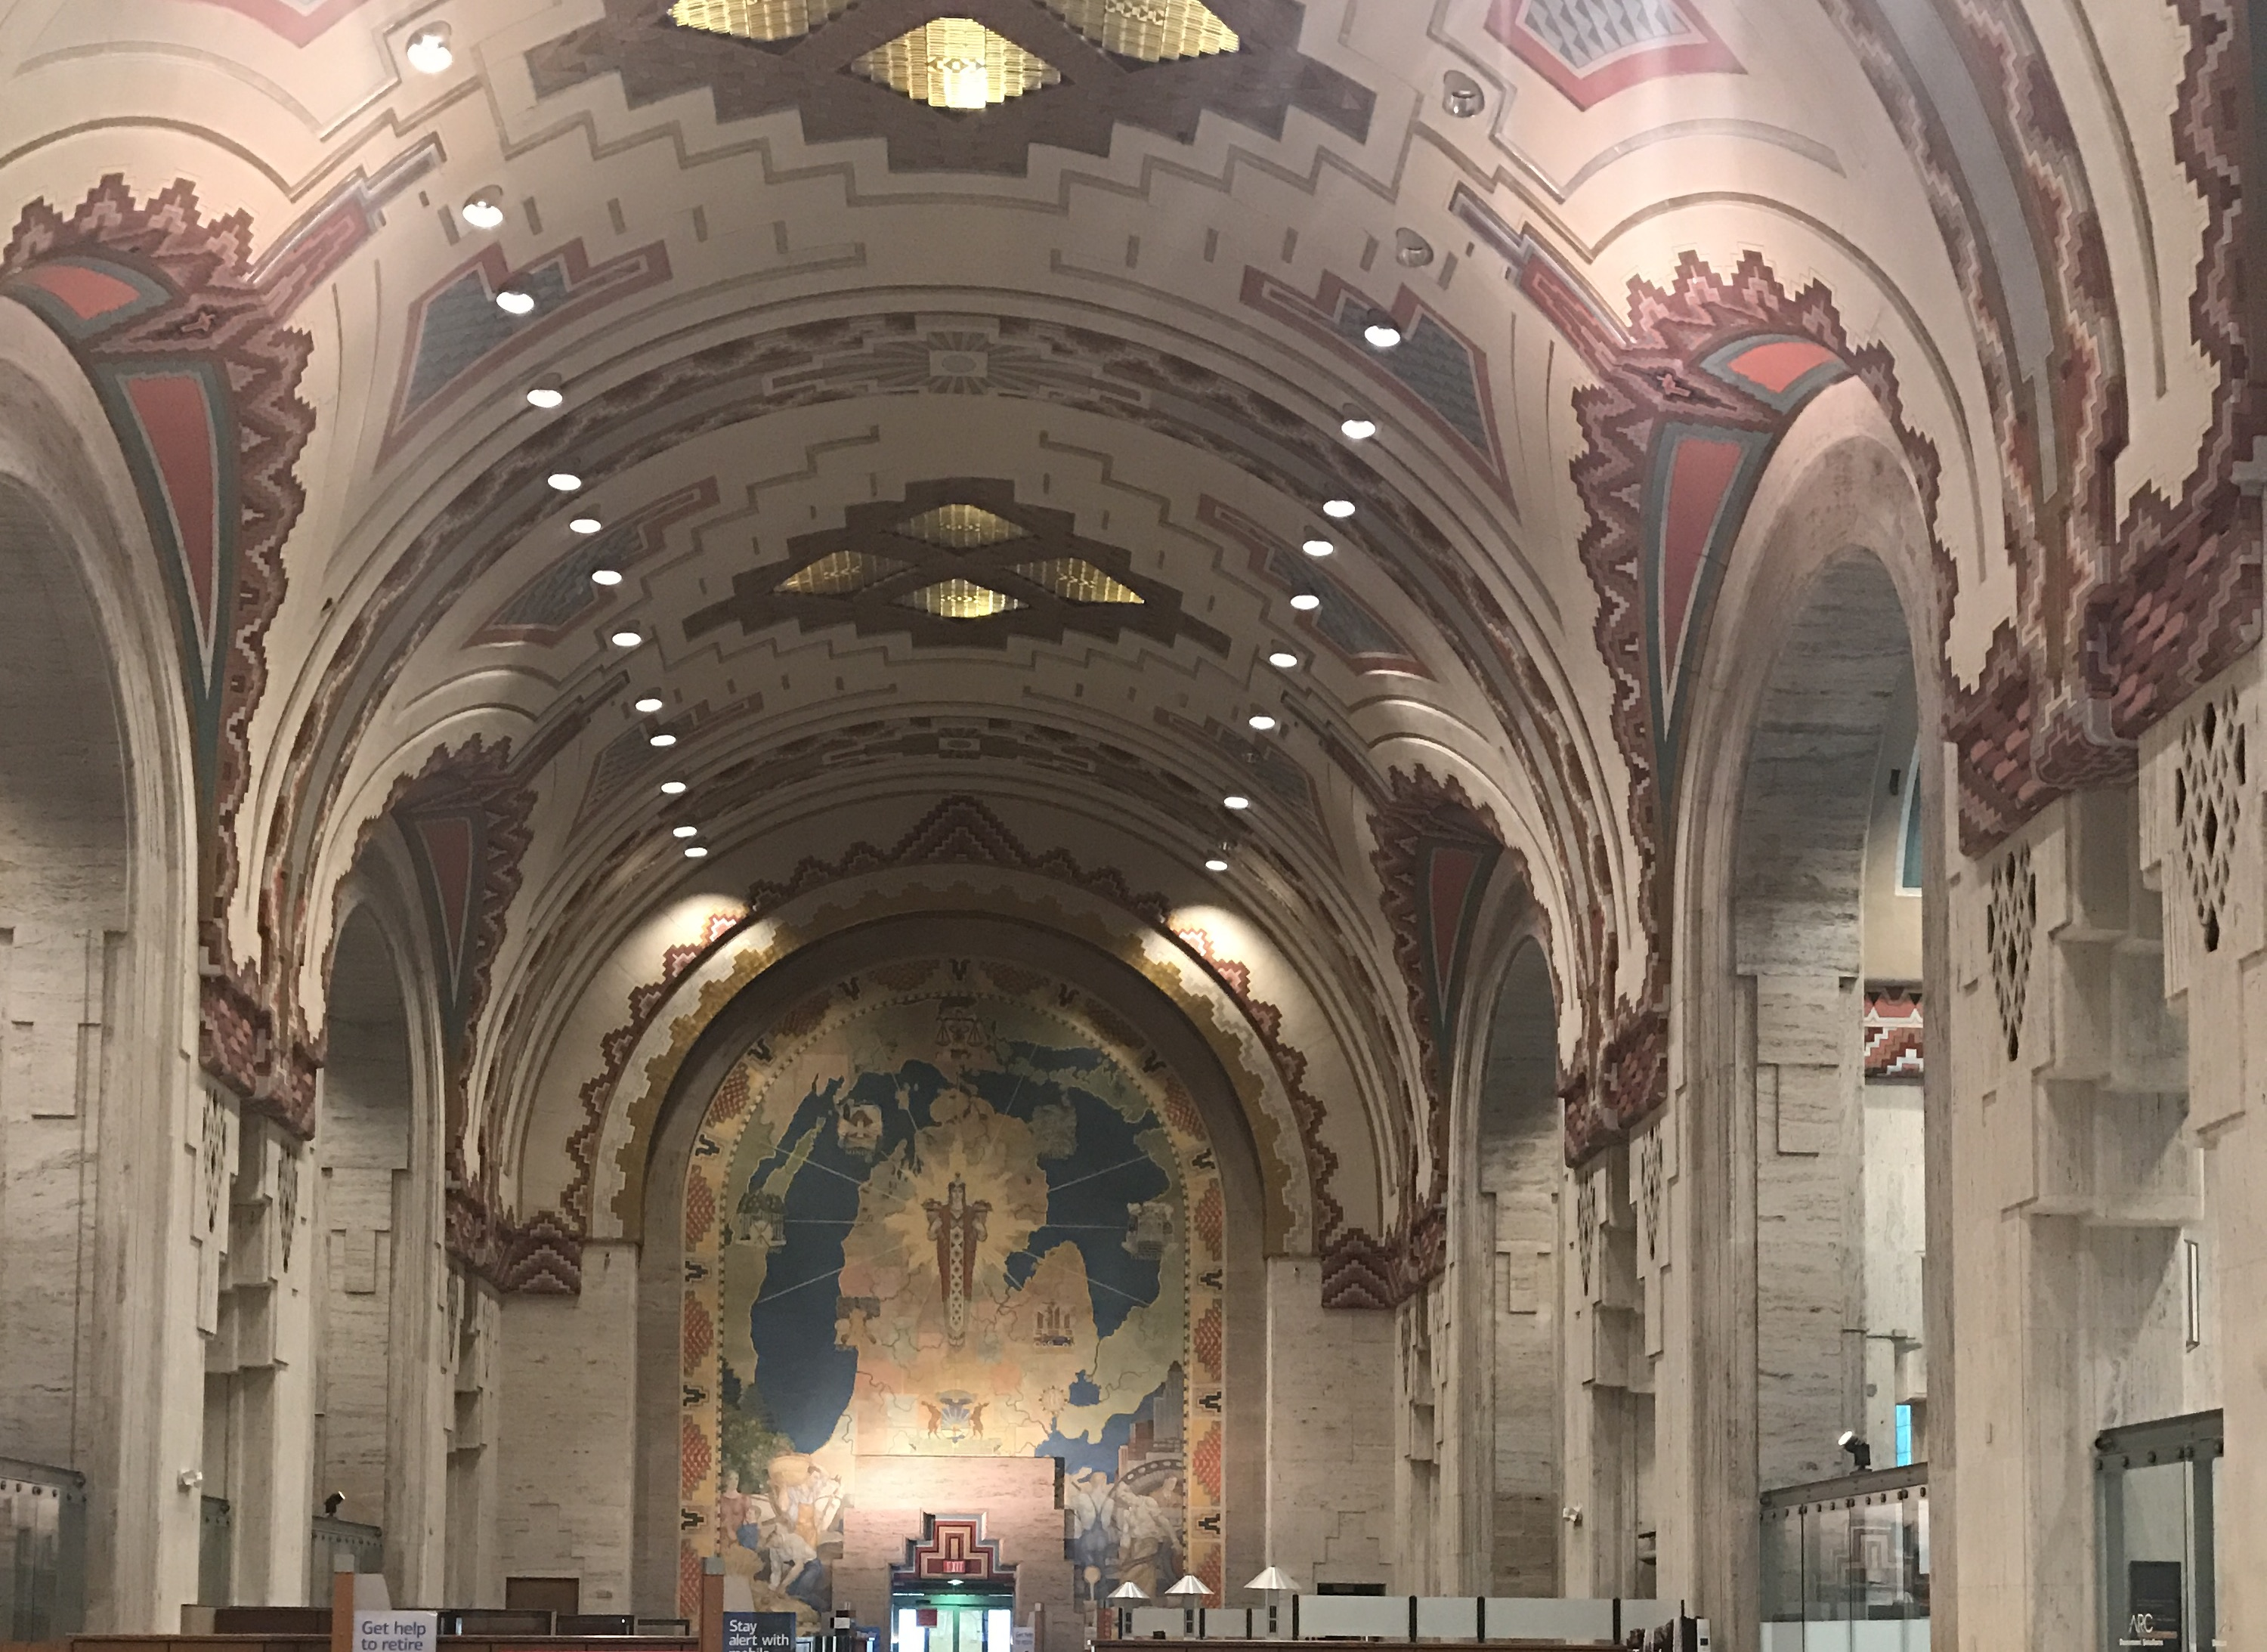 Interior of the Guardian Building in Detroit with Aztec designs on vaulted ceilings.